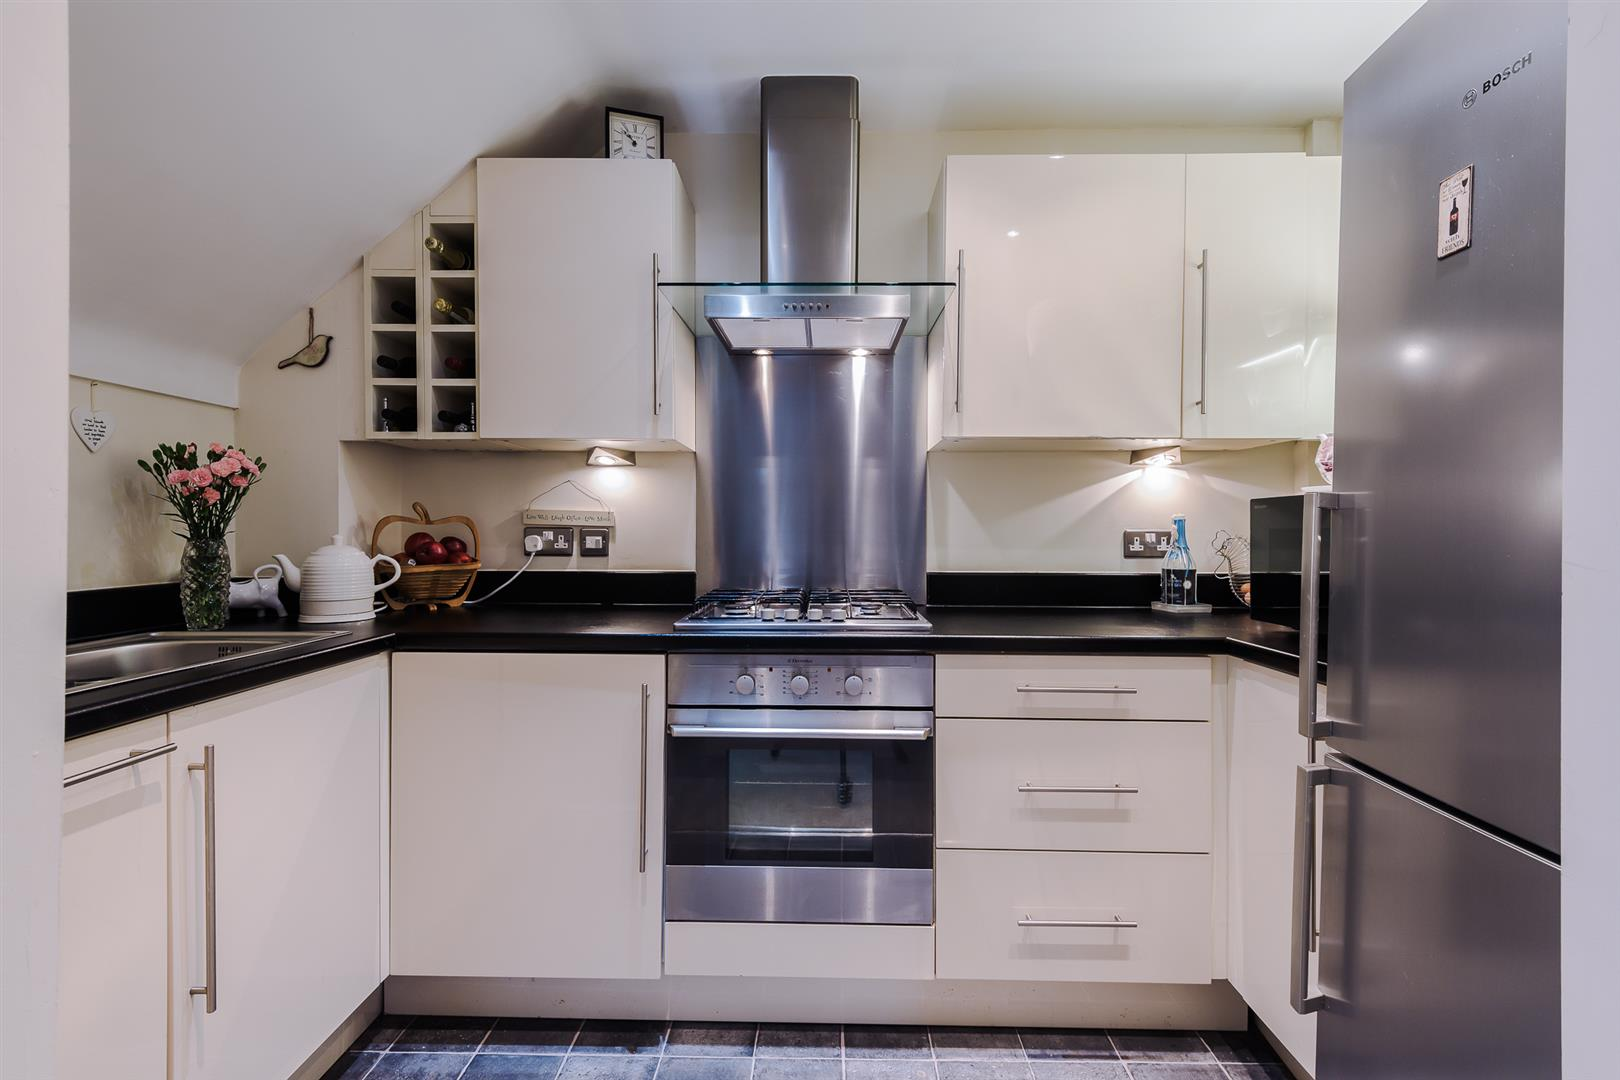 2 Bedroom Apartment Sale Agreed Image 2